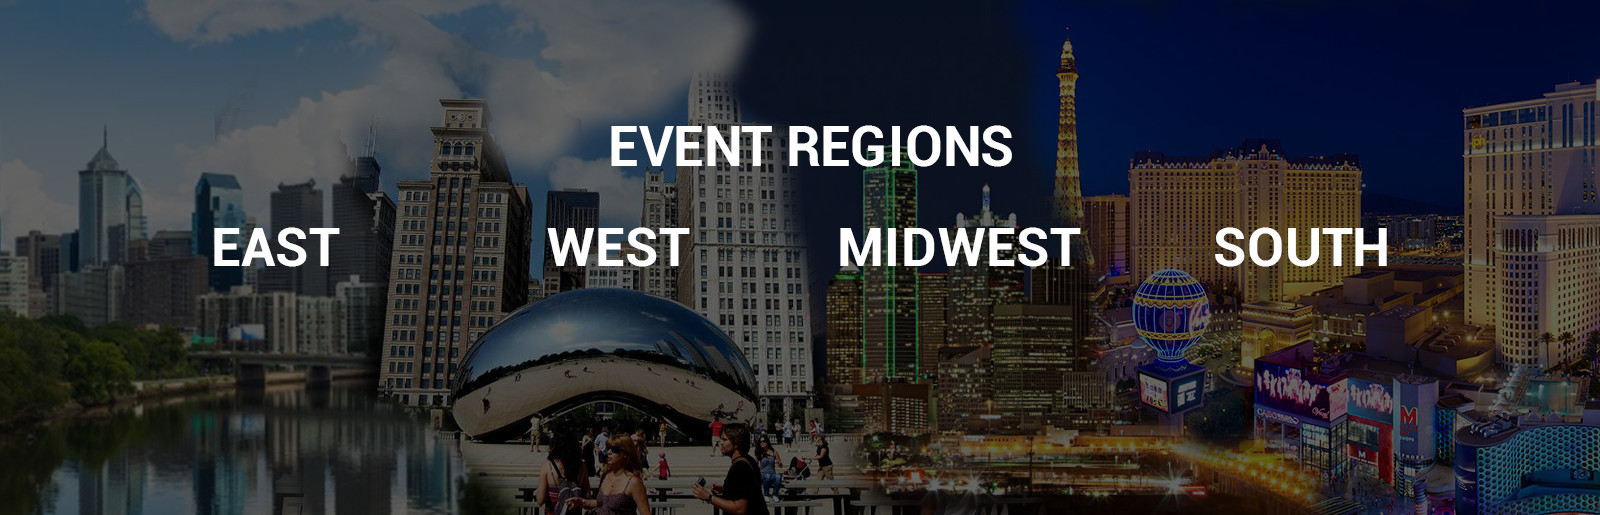 Events Regions East West Midwest South